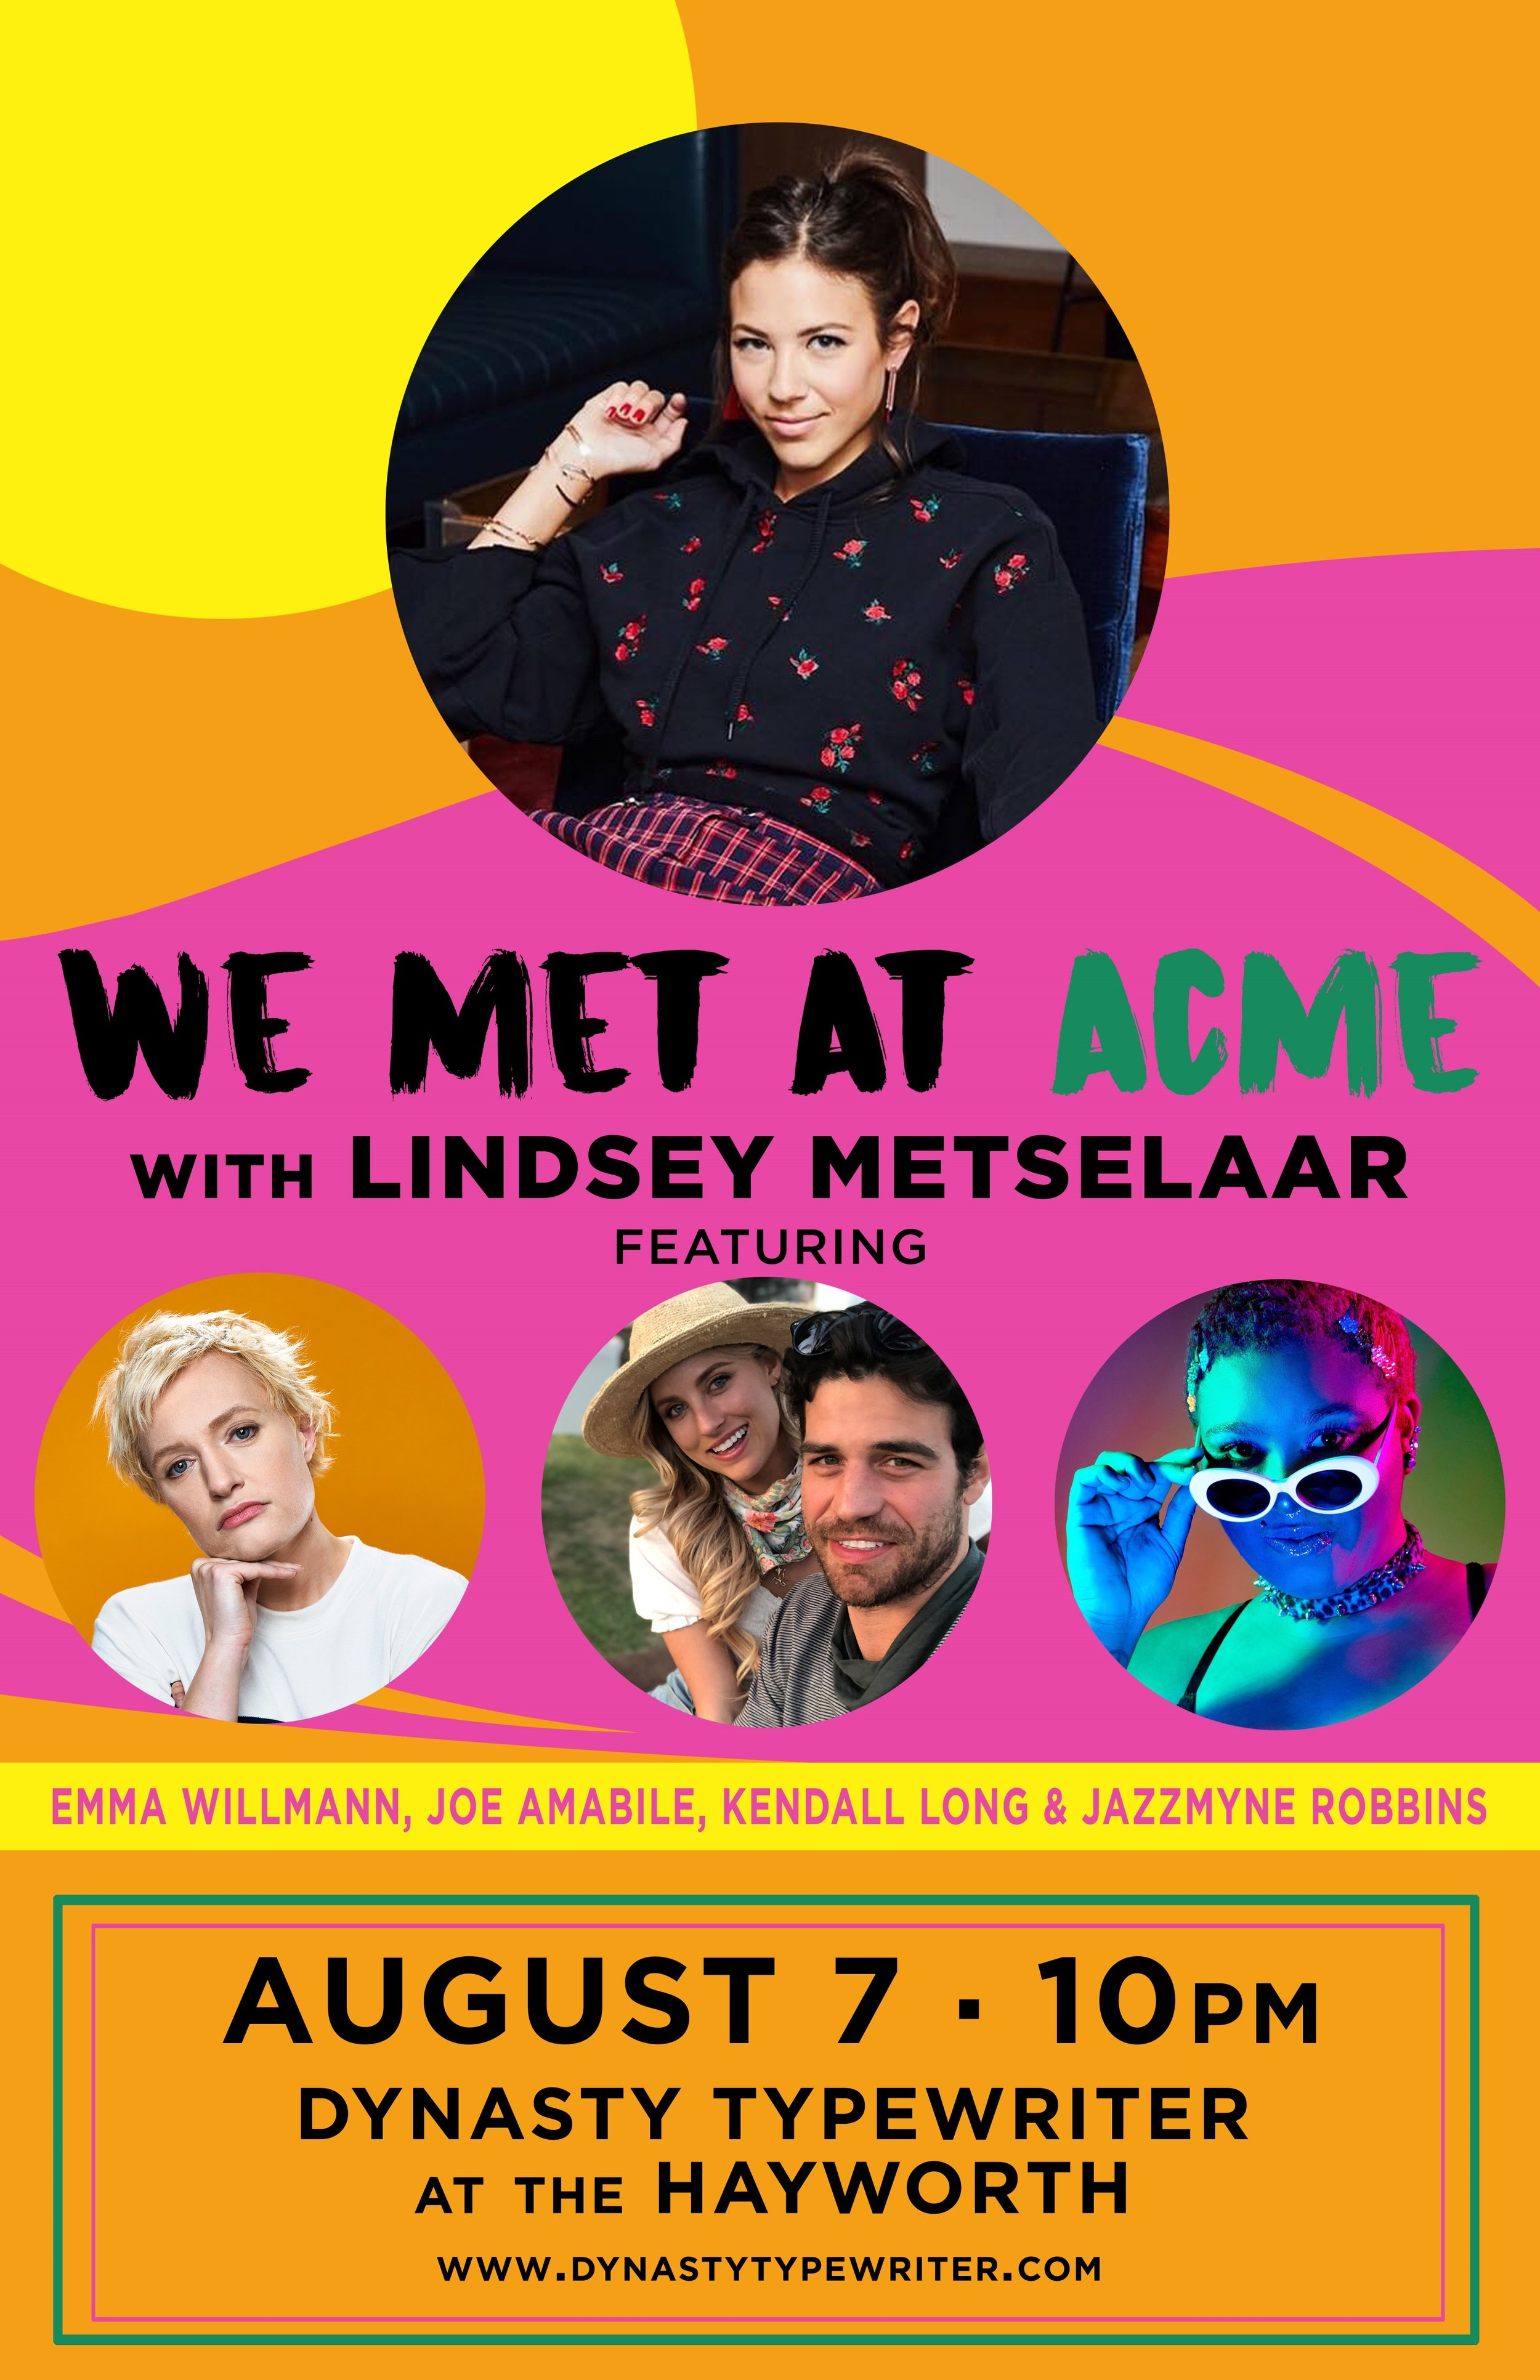 We Met At Acme - LA Poster (1).jpg